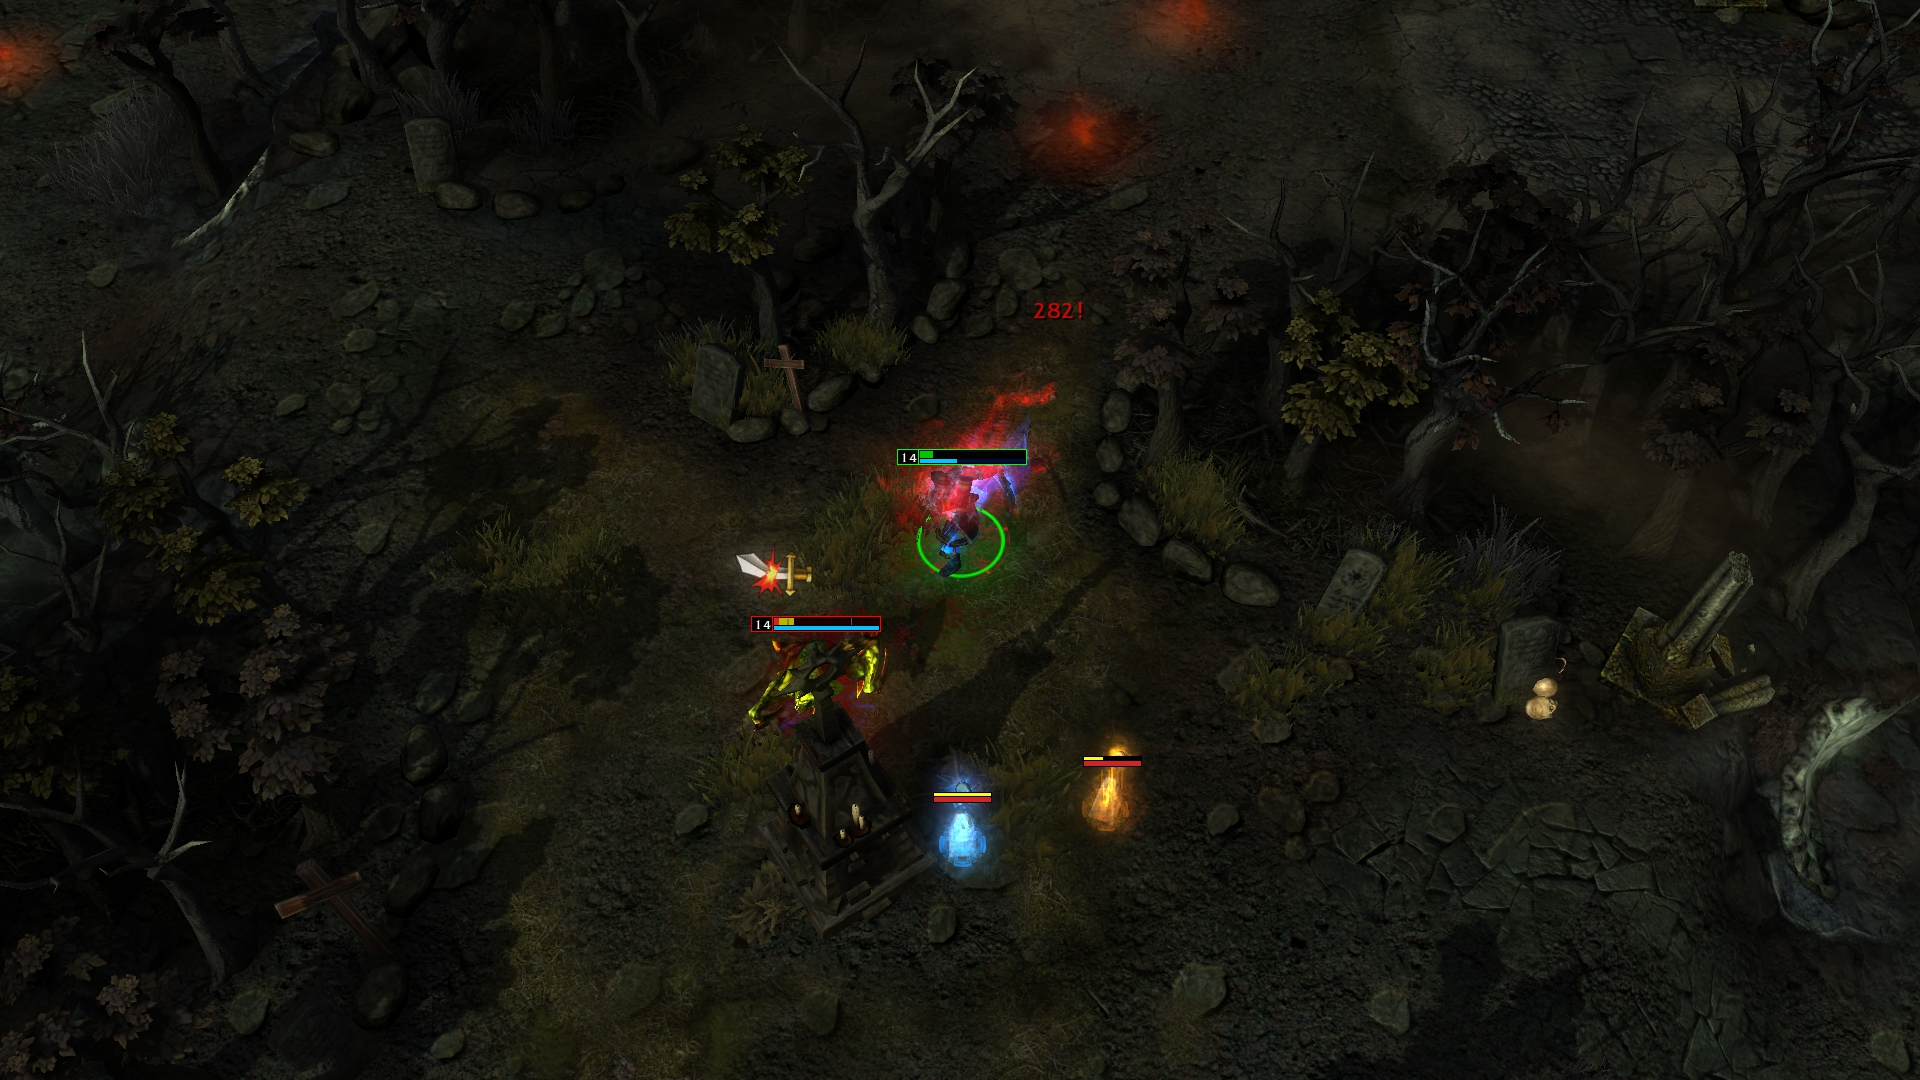 Heroes of Newerth Gameplay Screenshot 3